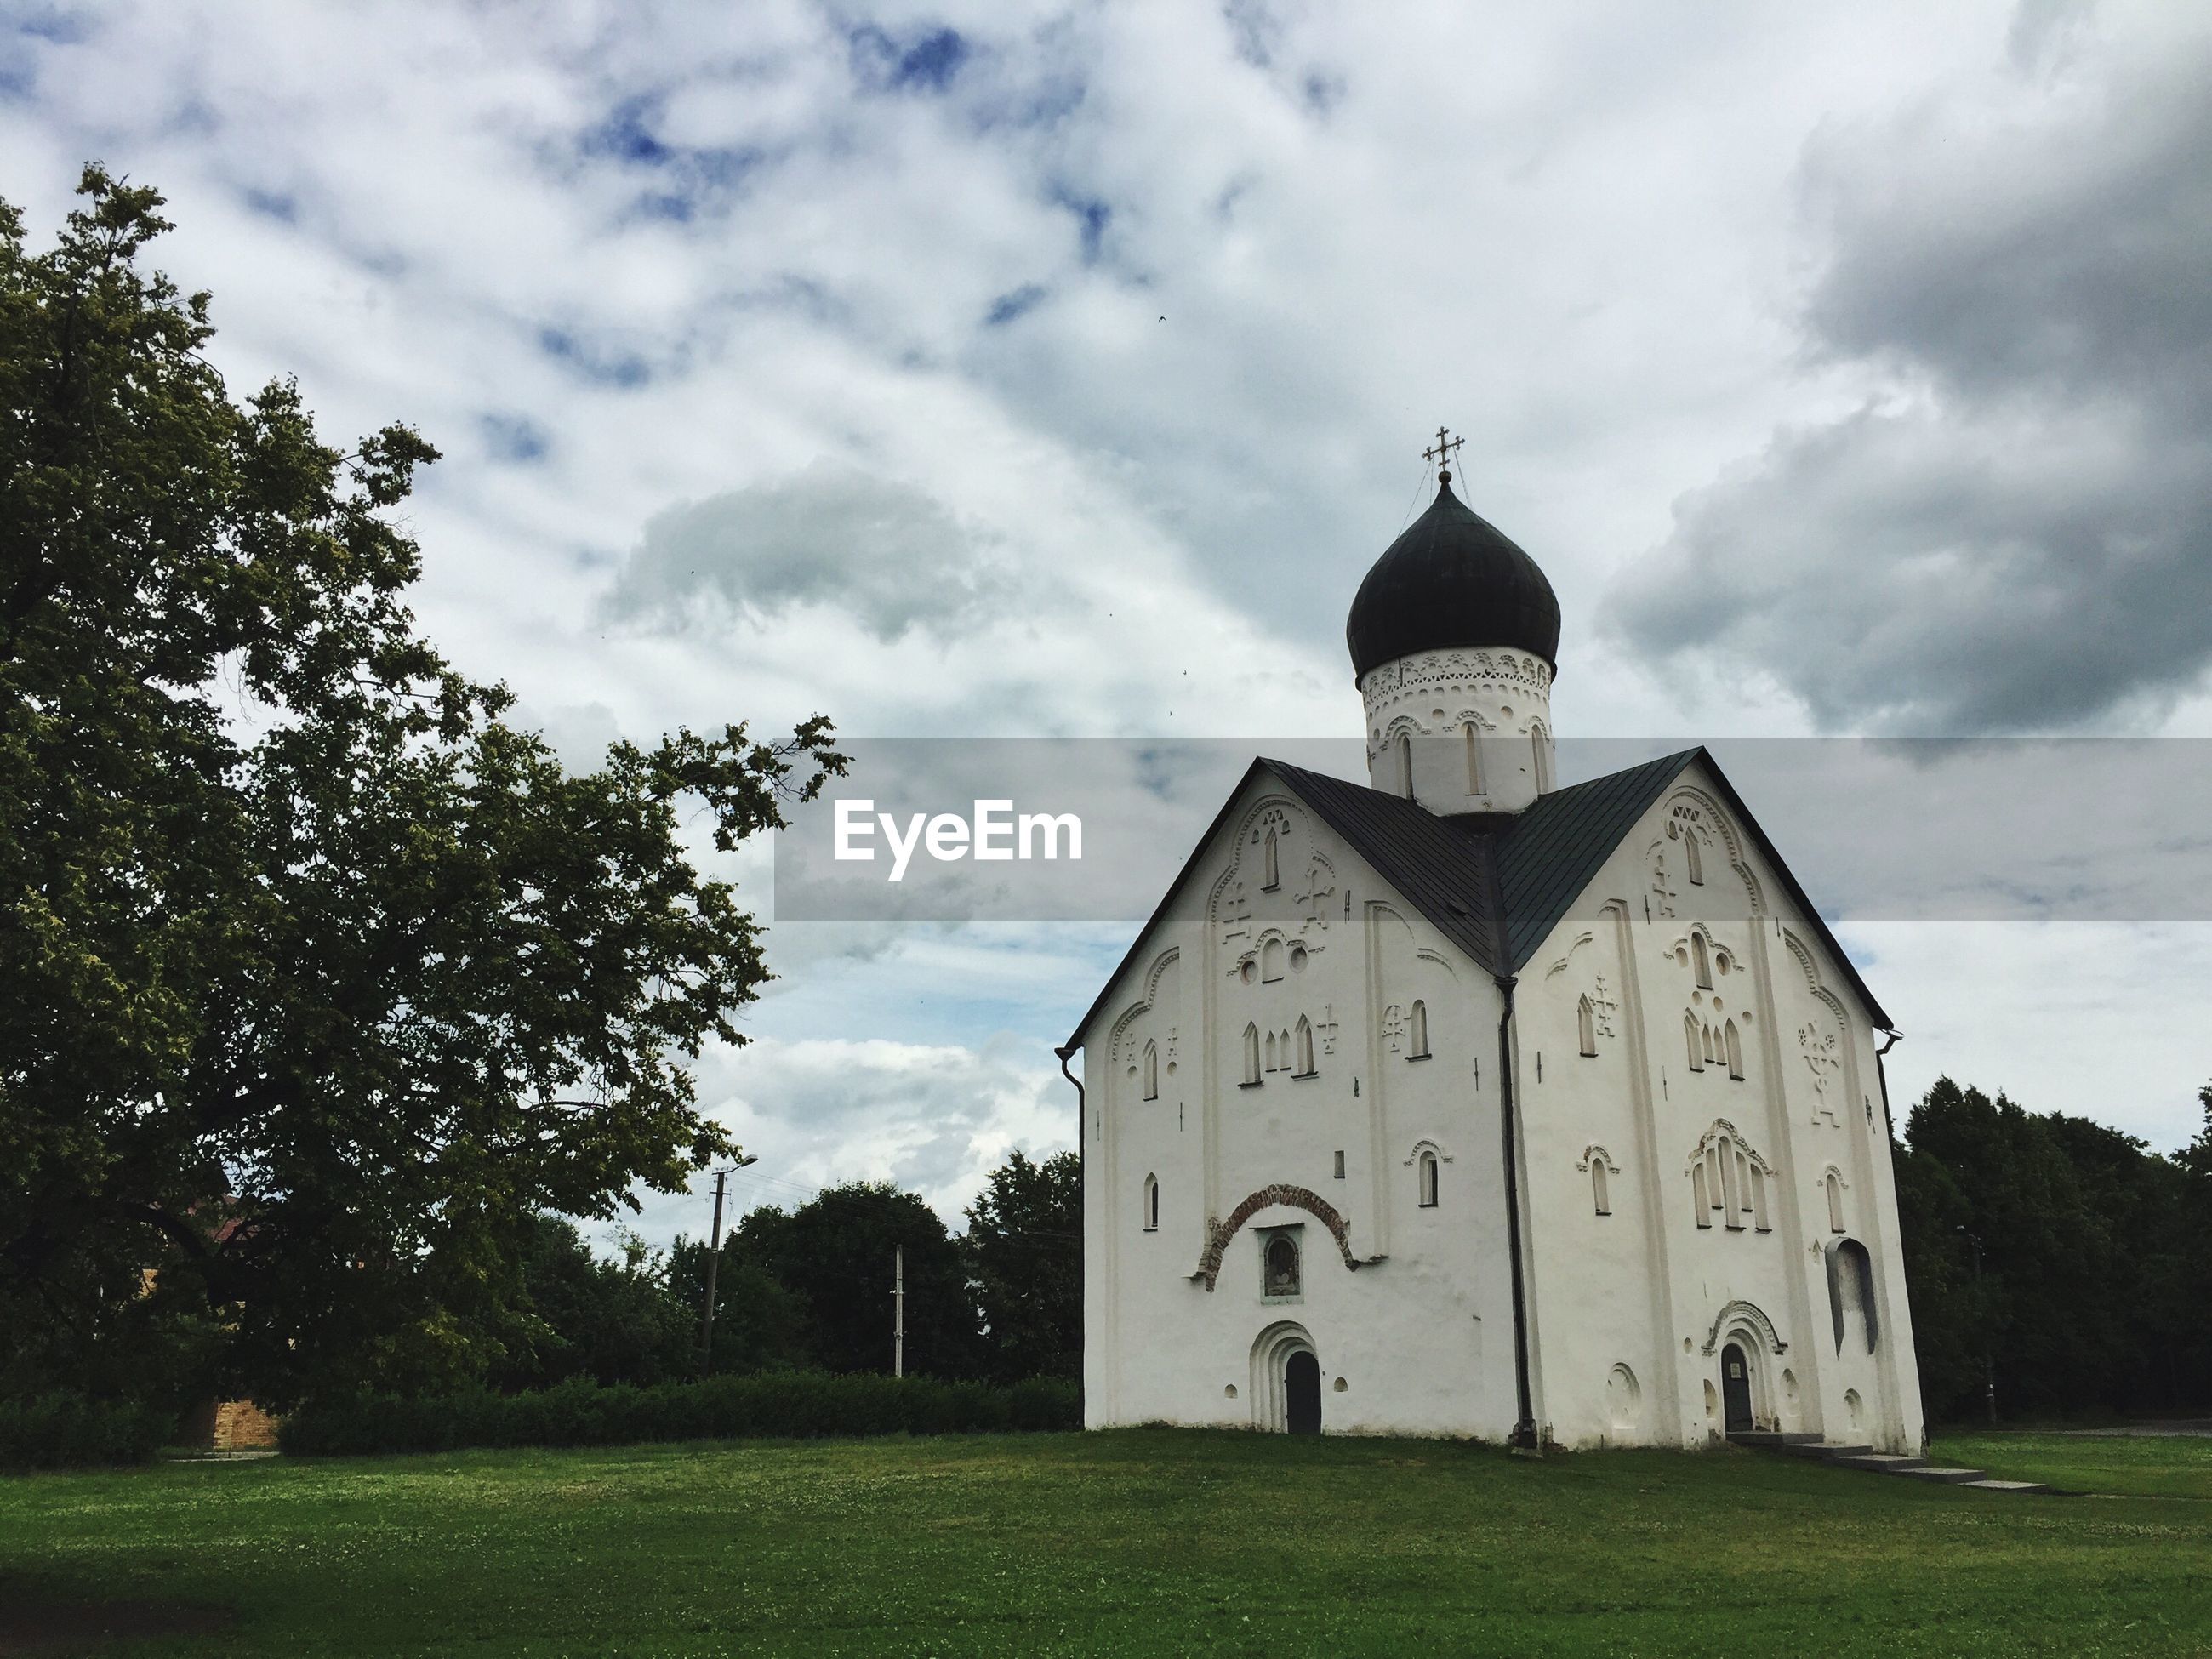 Low angle view of church against cloudy sky on grassy field